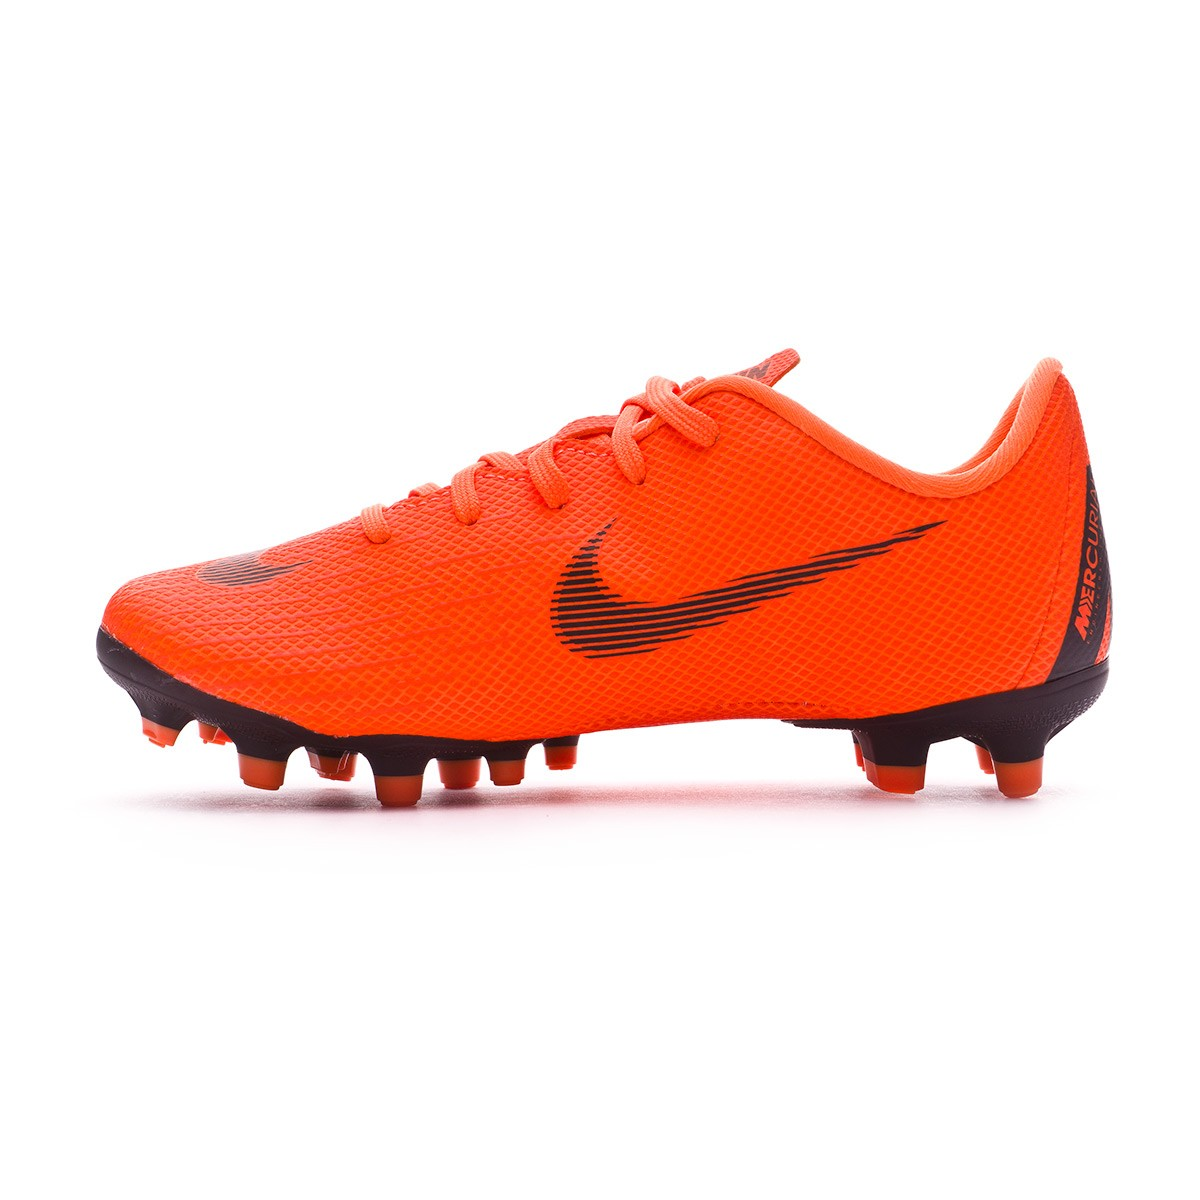 b904698ba4f59 Football Boots Nike Kids Mercurial Vapor XII Academy PS MG Total  orange-Black-Volt - Tienda de fútbol Fútbol Emotion